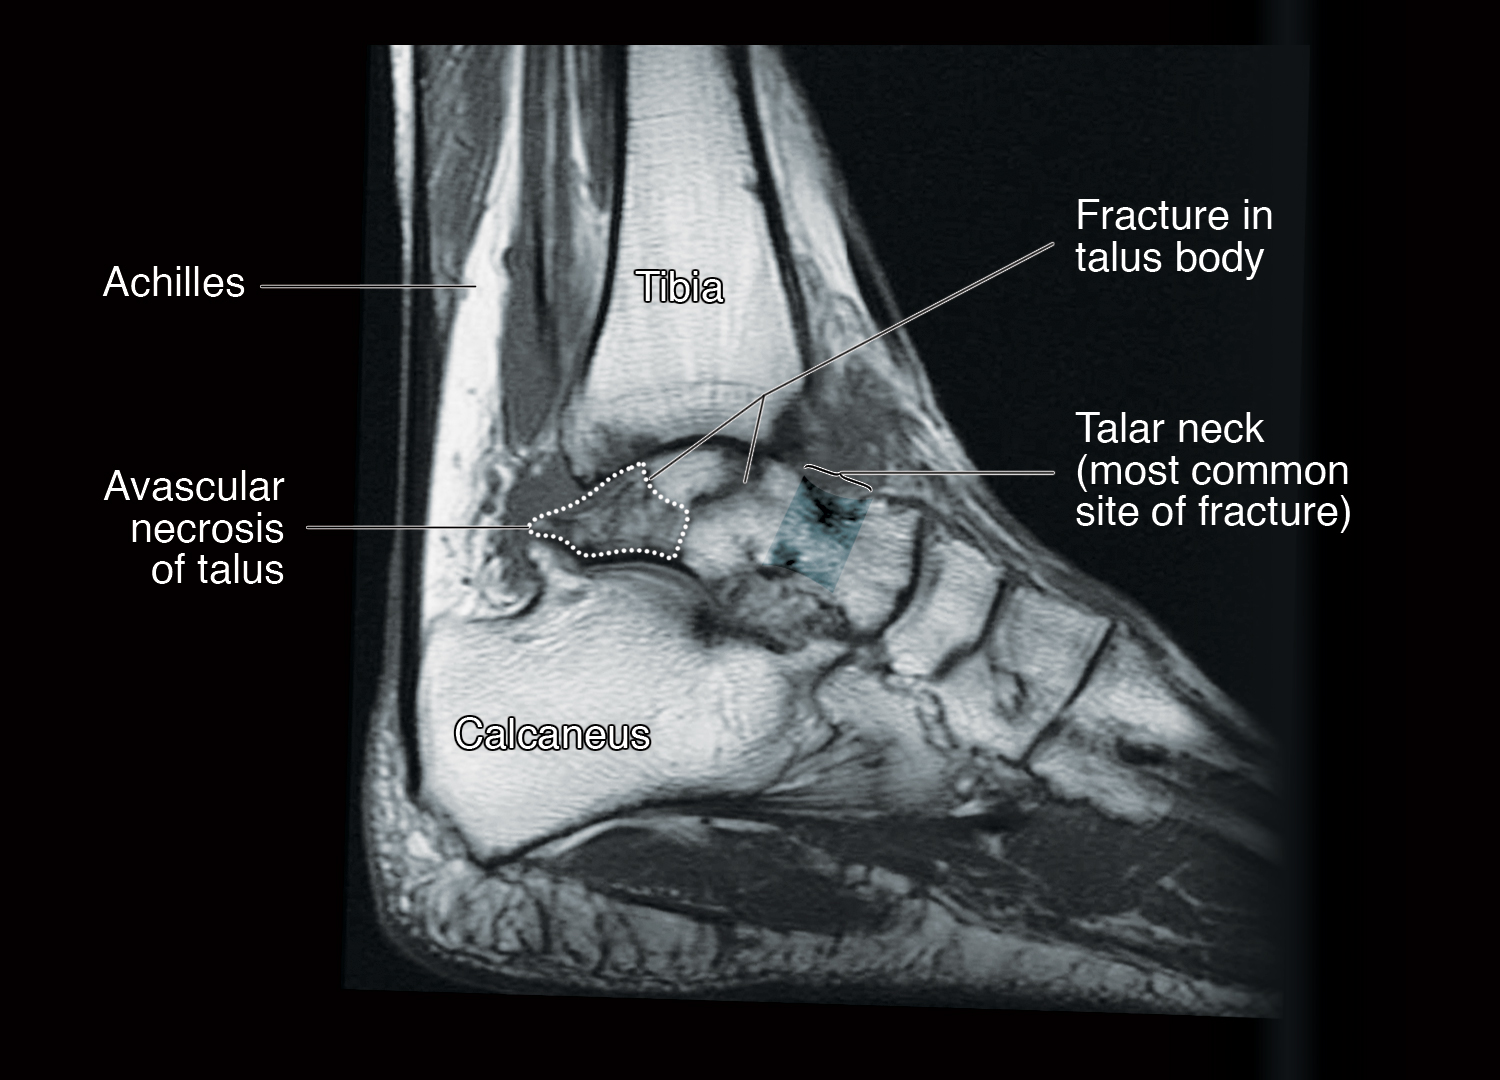 Talus foot. Fracture of the talus of the foot: consequences 8